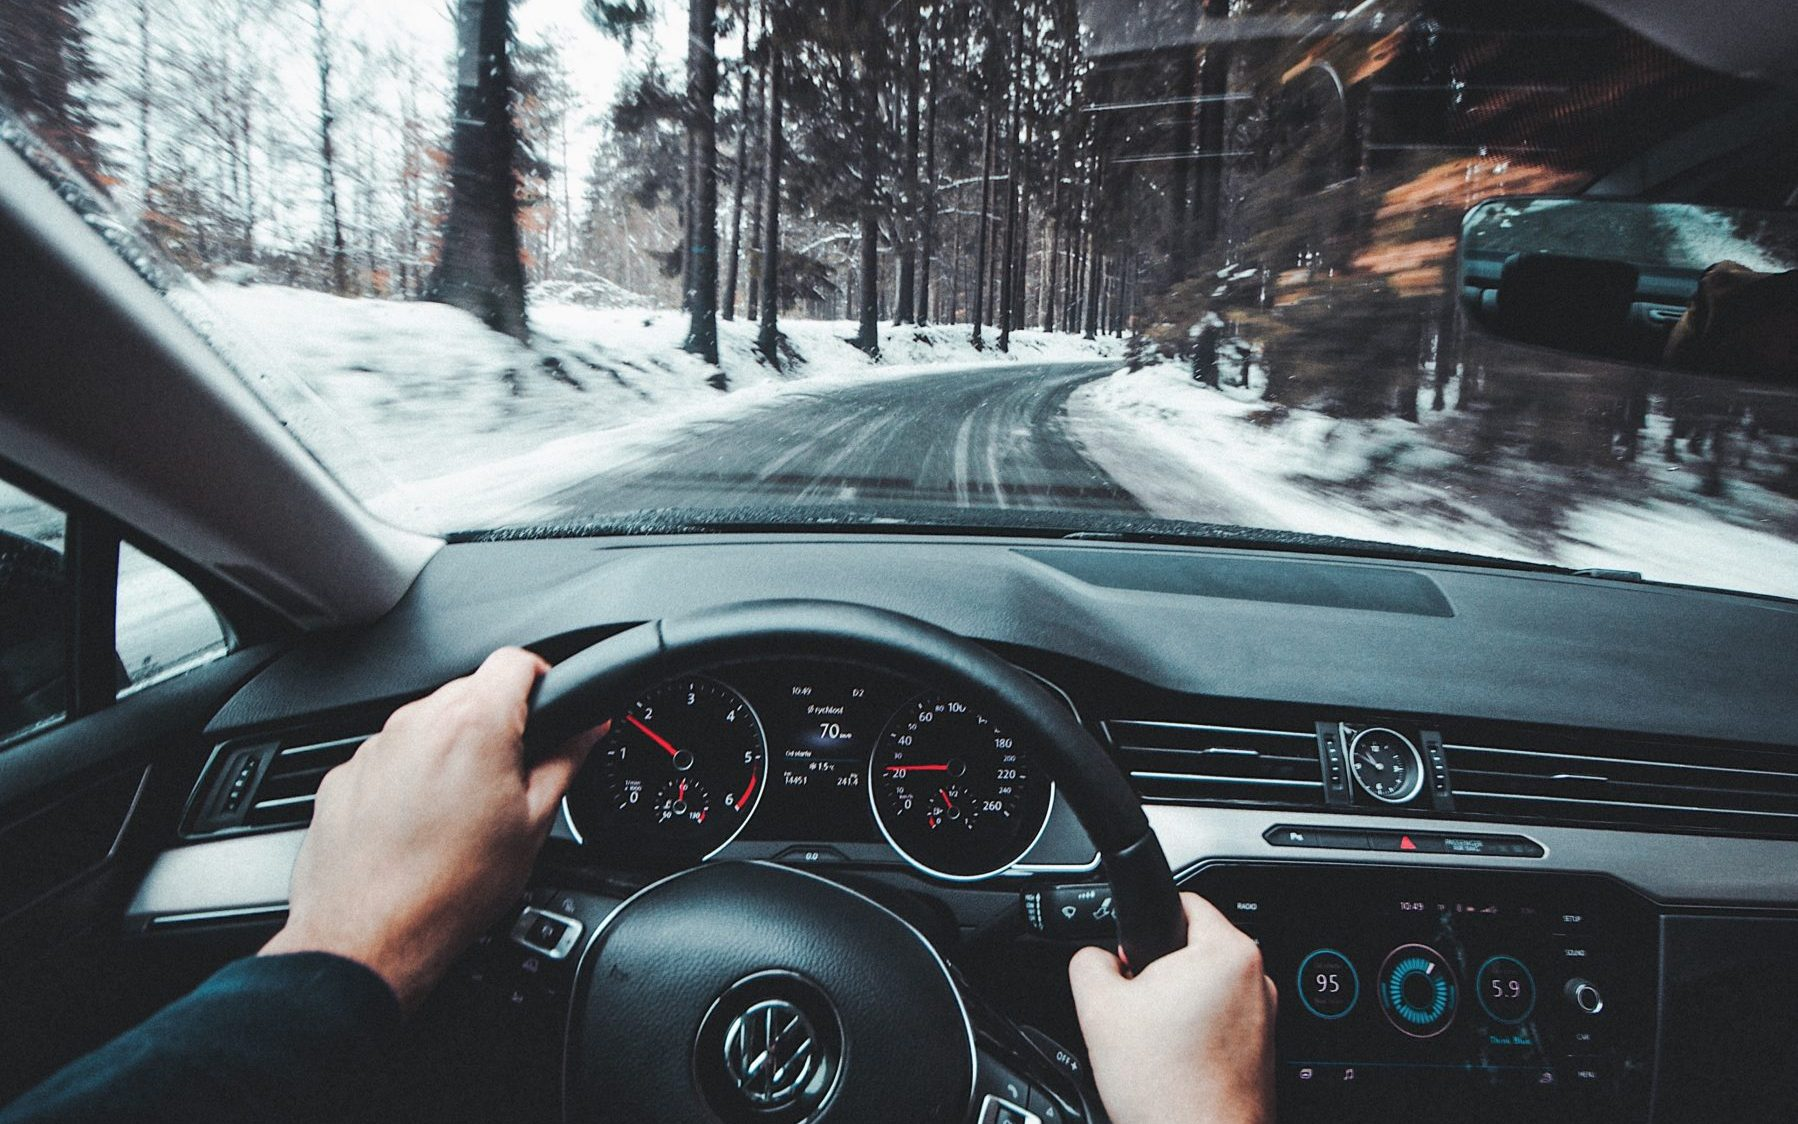 driving-on-winter-road